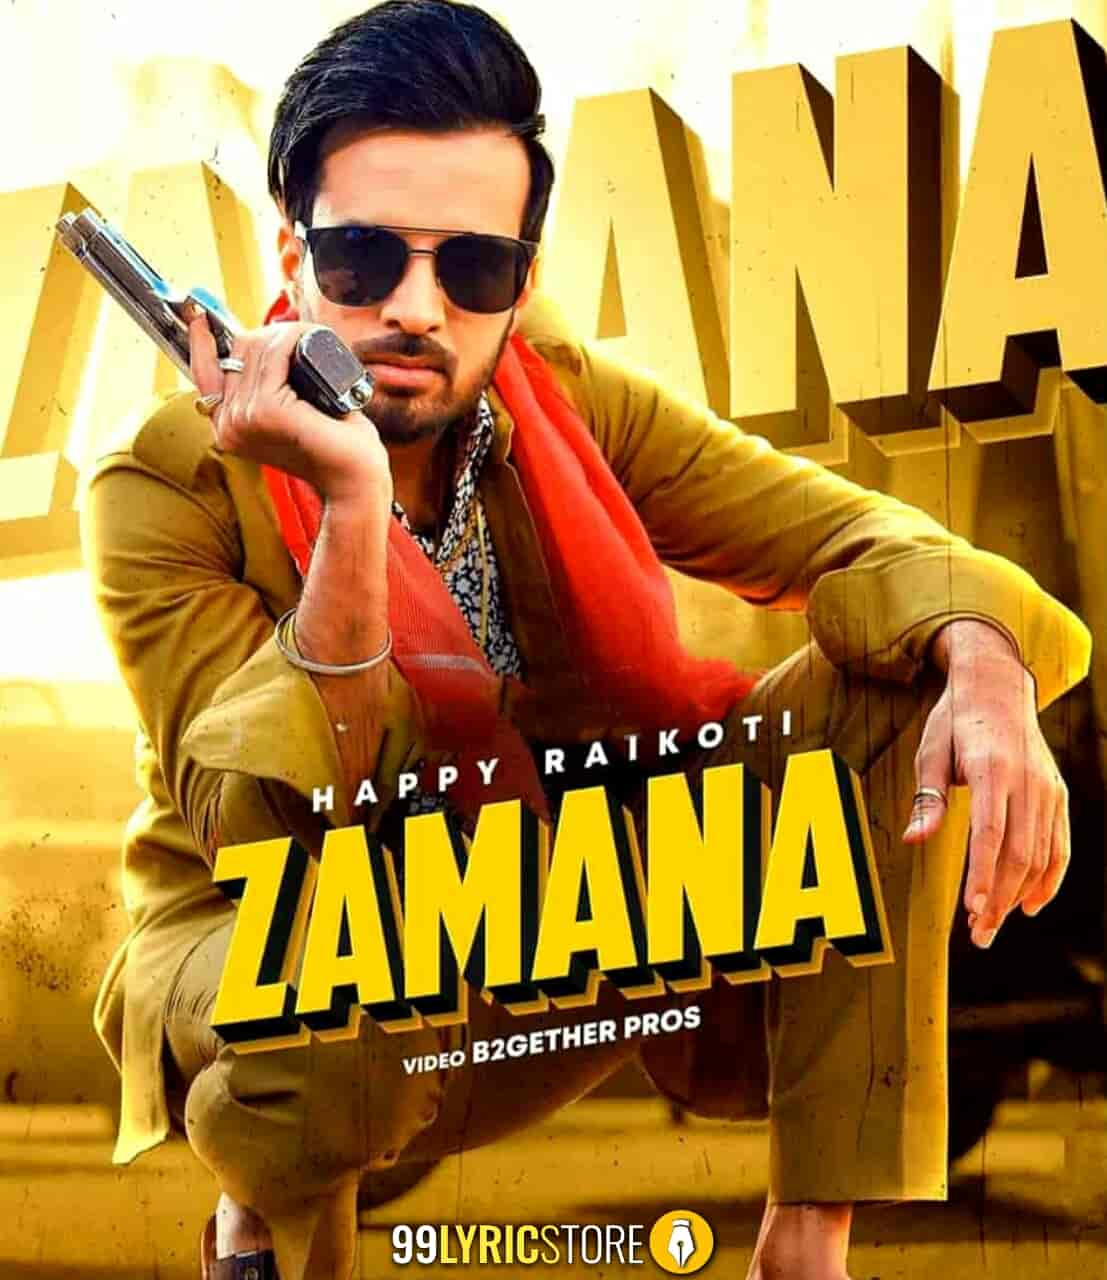 Zamana Punjabi Song Images By Happy Raikoti